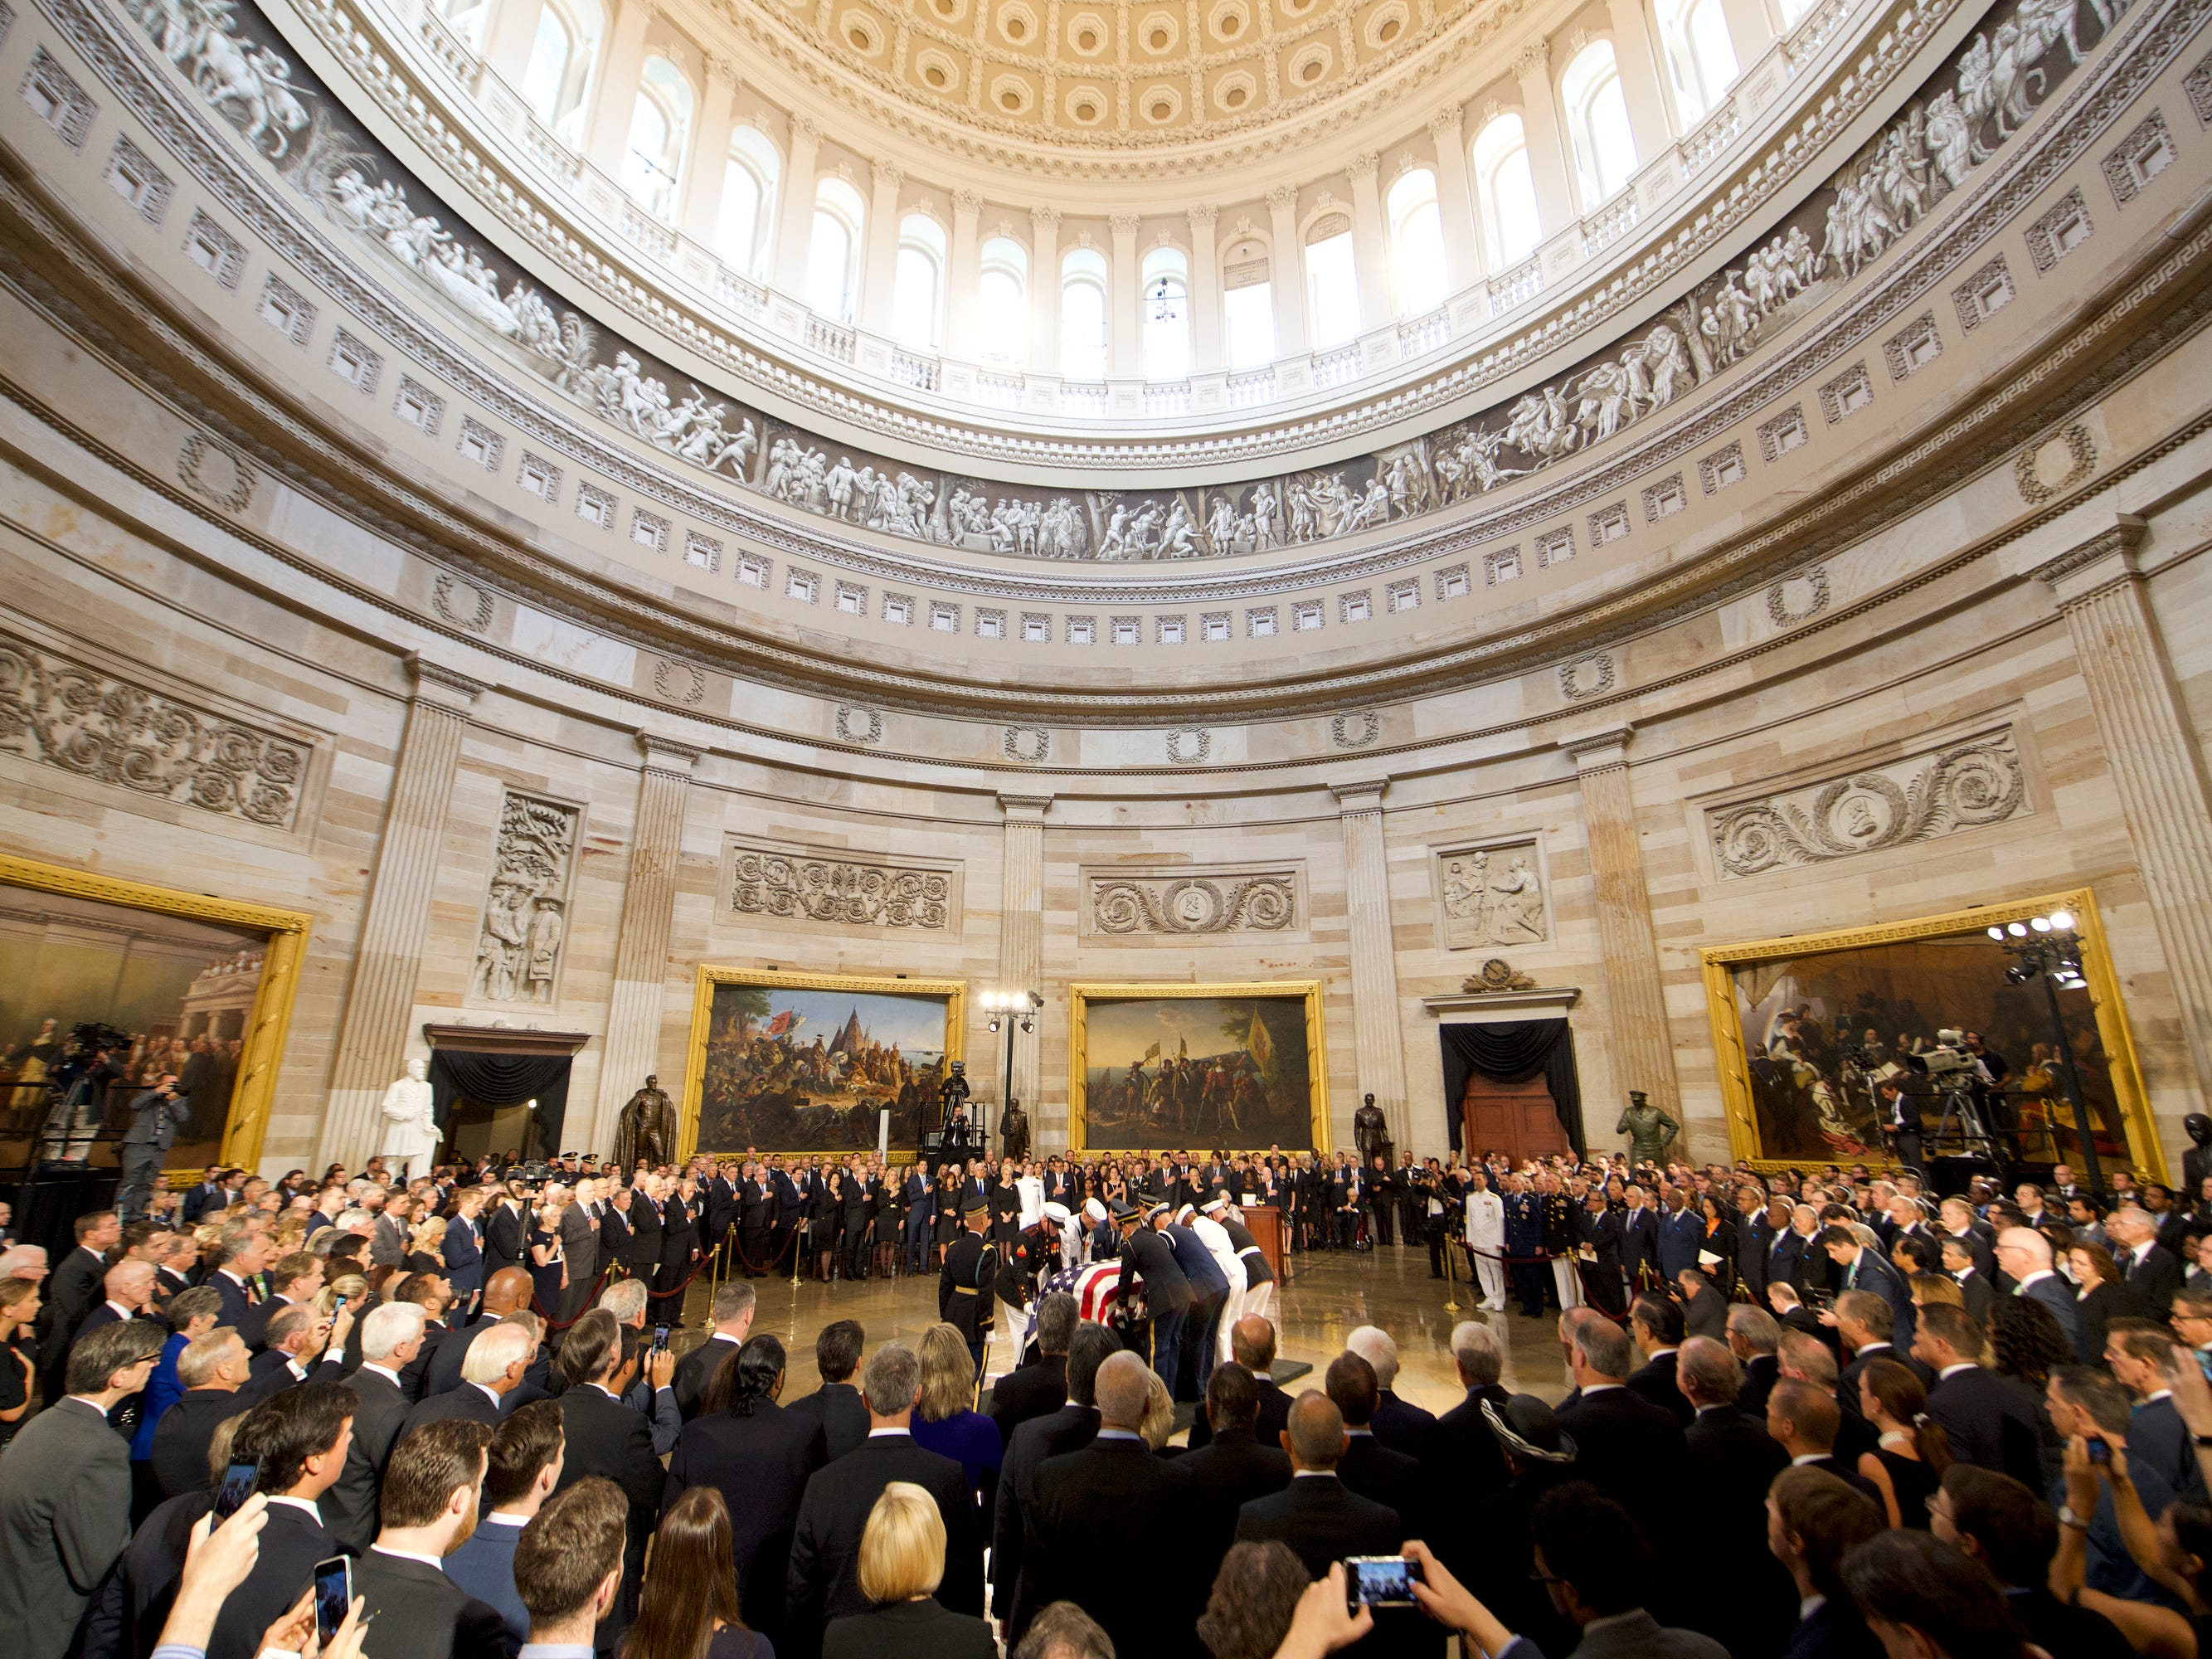 8/31/18 11:53:07 AM -- Washington, DC, U.S.A  -- The body of John McCain is carried in before he lies in state at the U.S. Capitol in Washington on Aug. 31, 2018 in Washington. Sen. McCain died on Aug. 25. --    Photo by Jasper Colt, USA TODAY Staff ORG XMIT:  JC 137436 McCain U.S. Capi 8/31/2018 (Via OlyDrop)